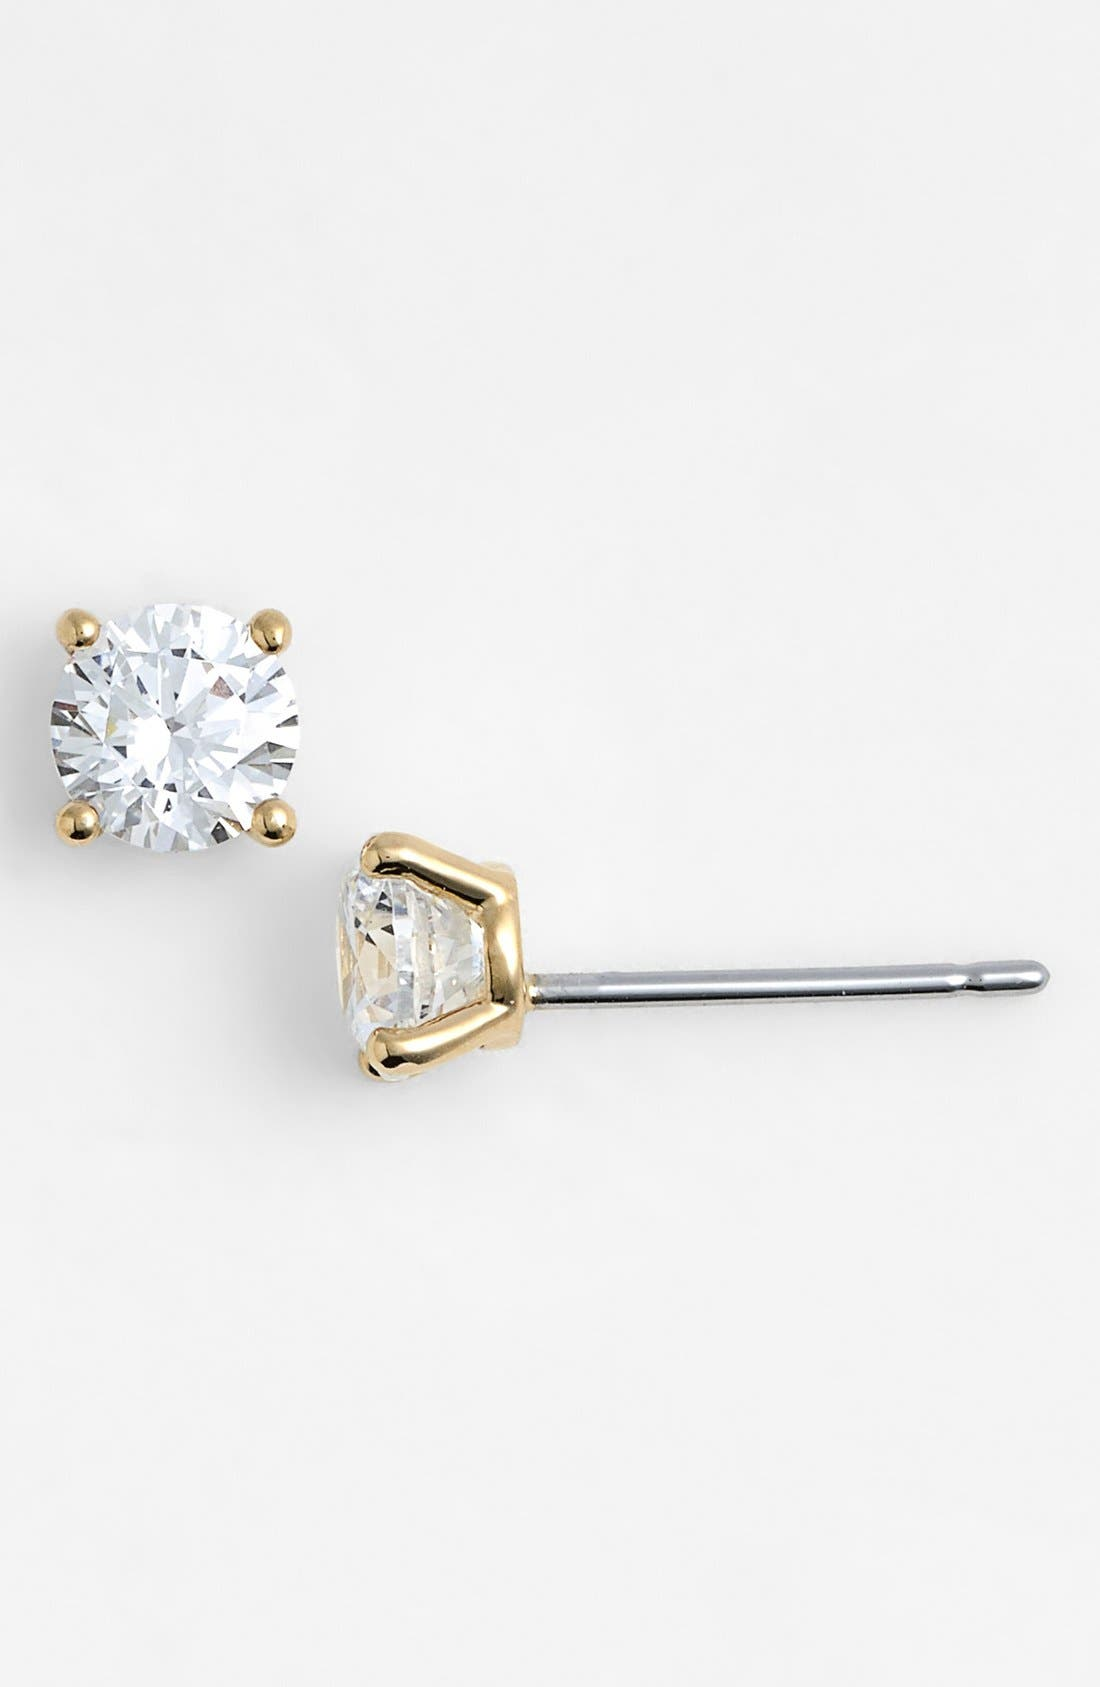 Cubic Zirconia Stud Earrings,                         Main,                         color, Gold